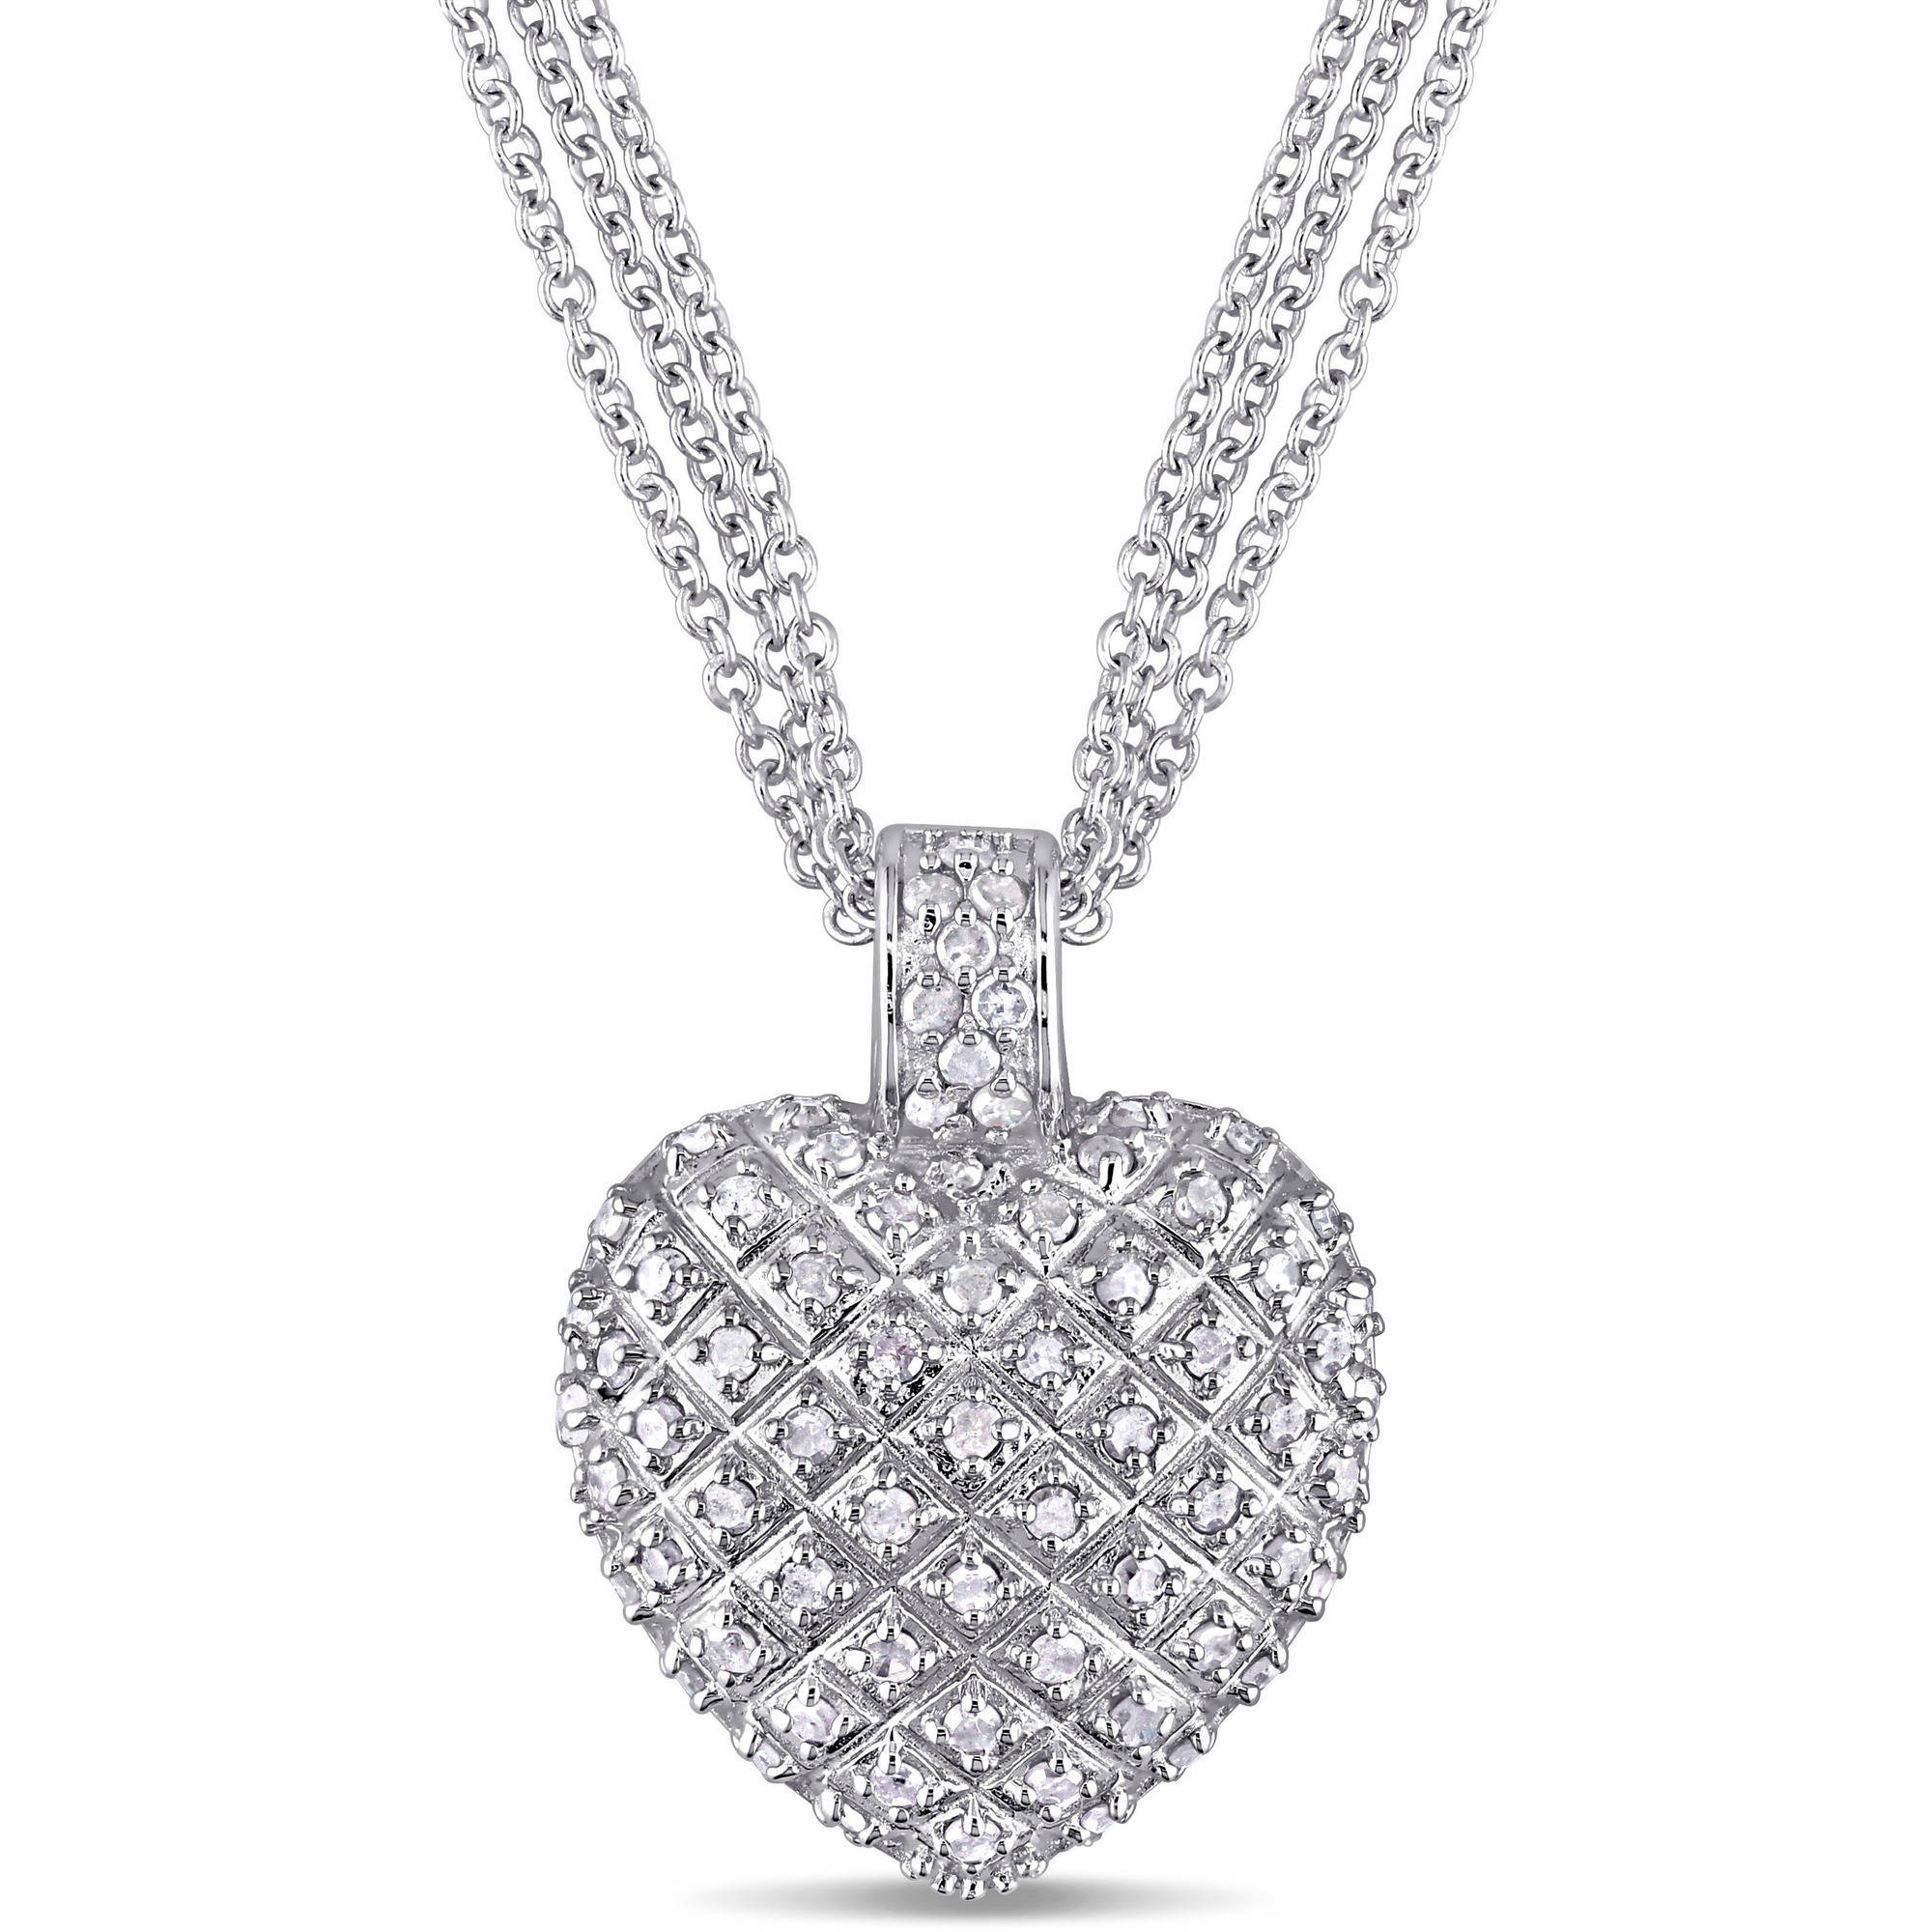 Miabella 1 Carat T.W. Diamond Sterling Silver Heart Pendant with 3-Strand Chain, 18""